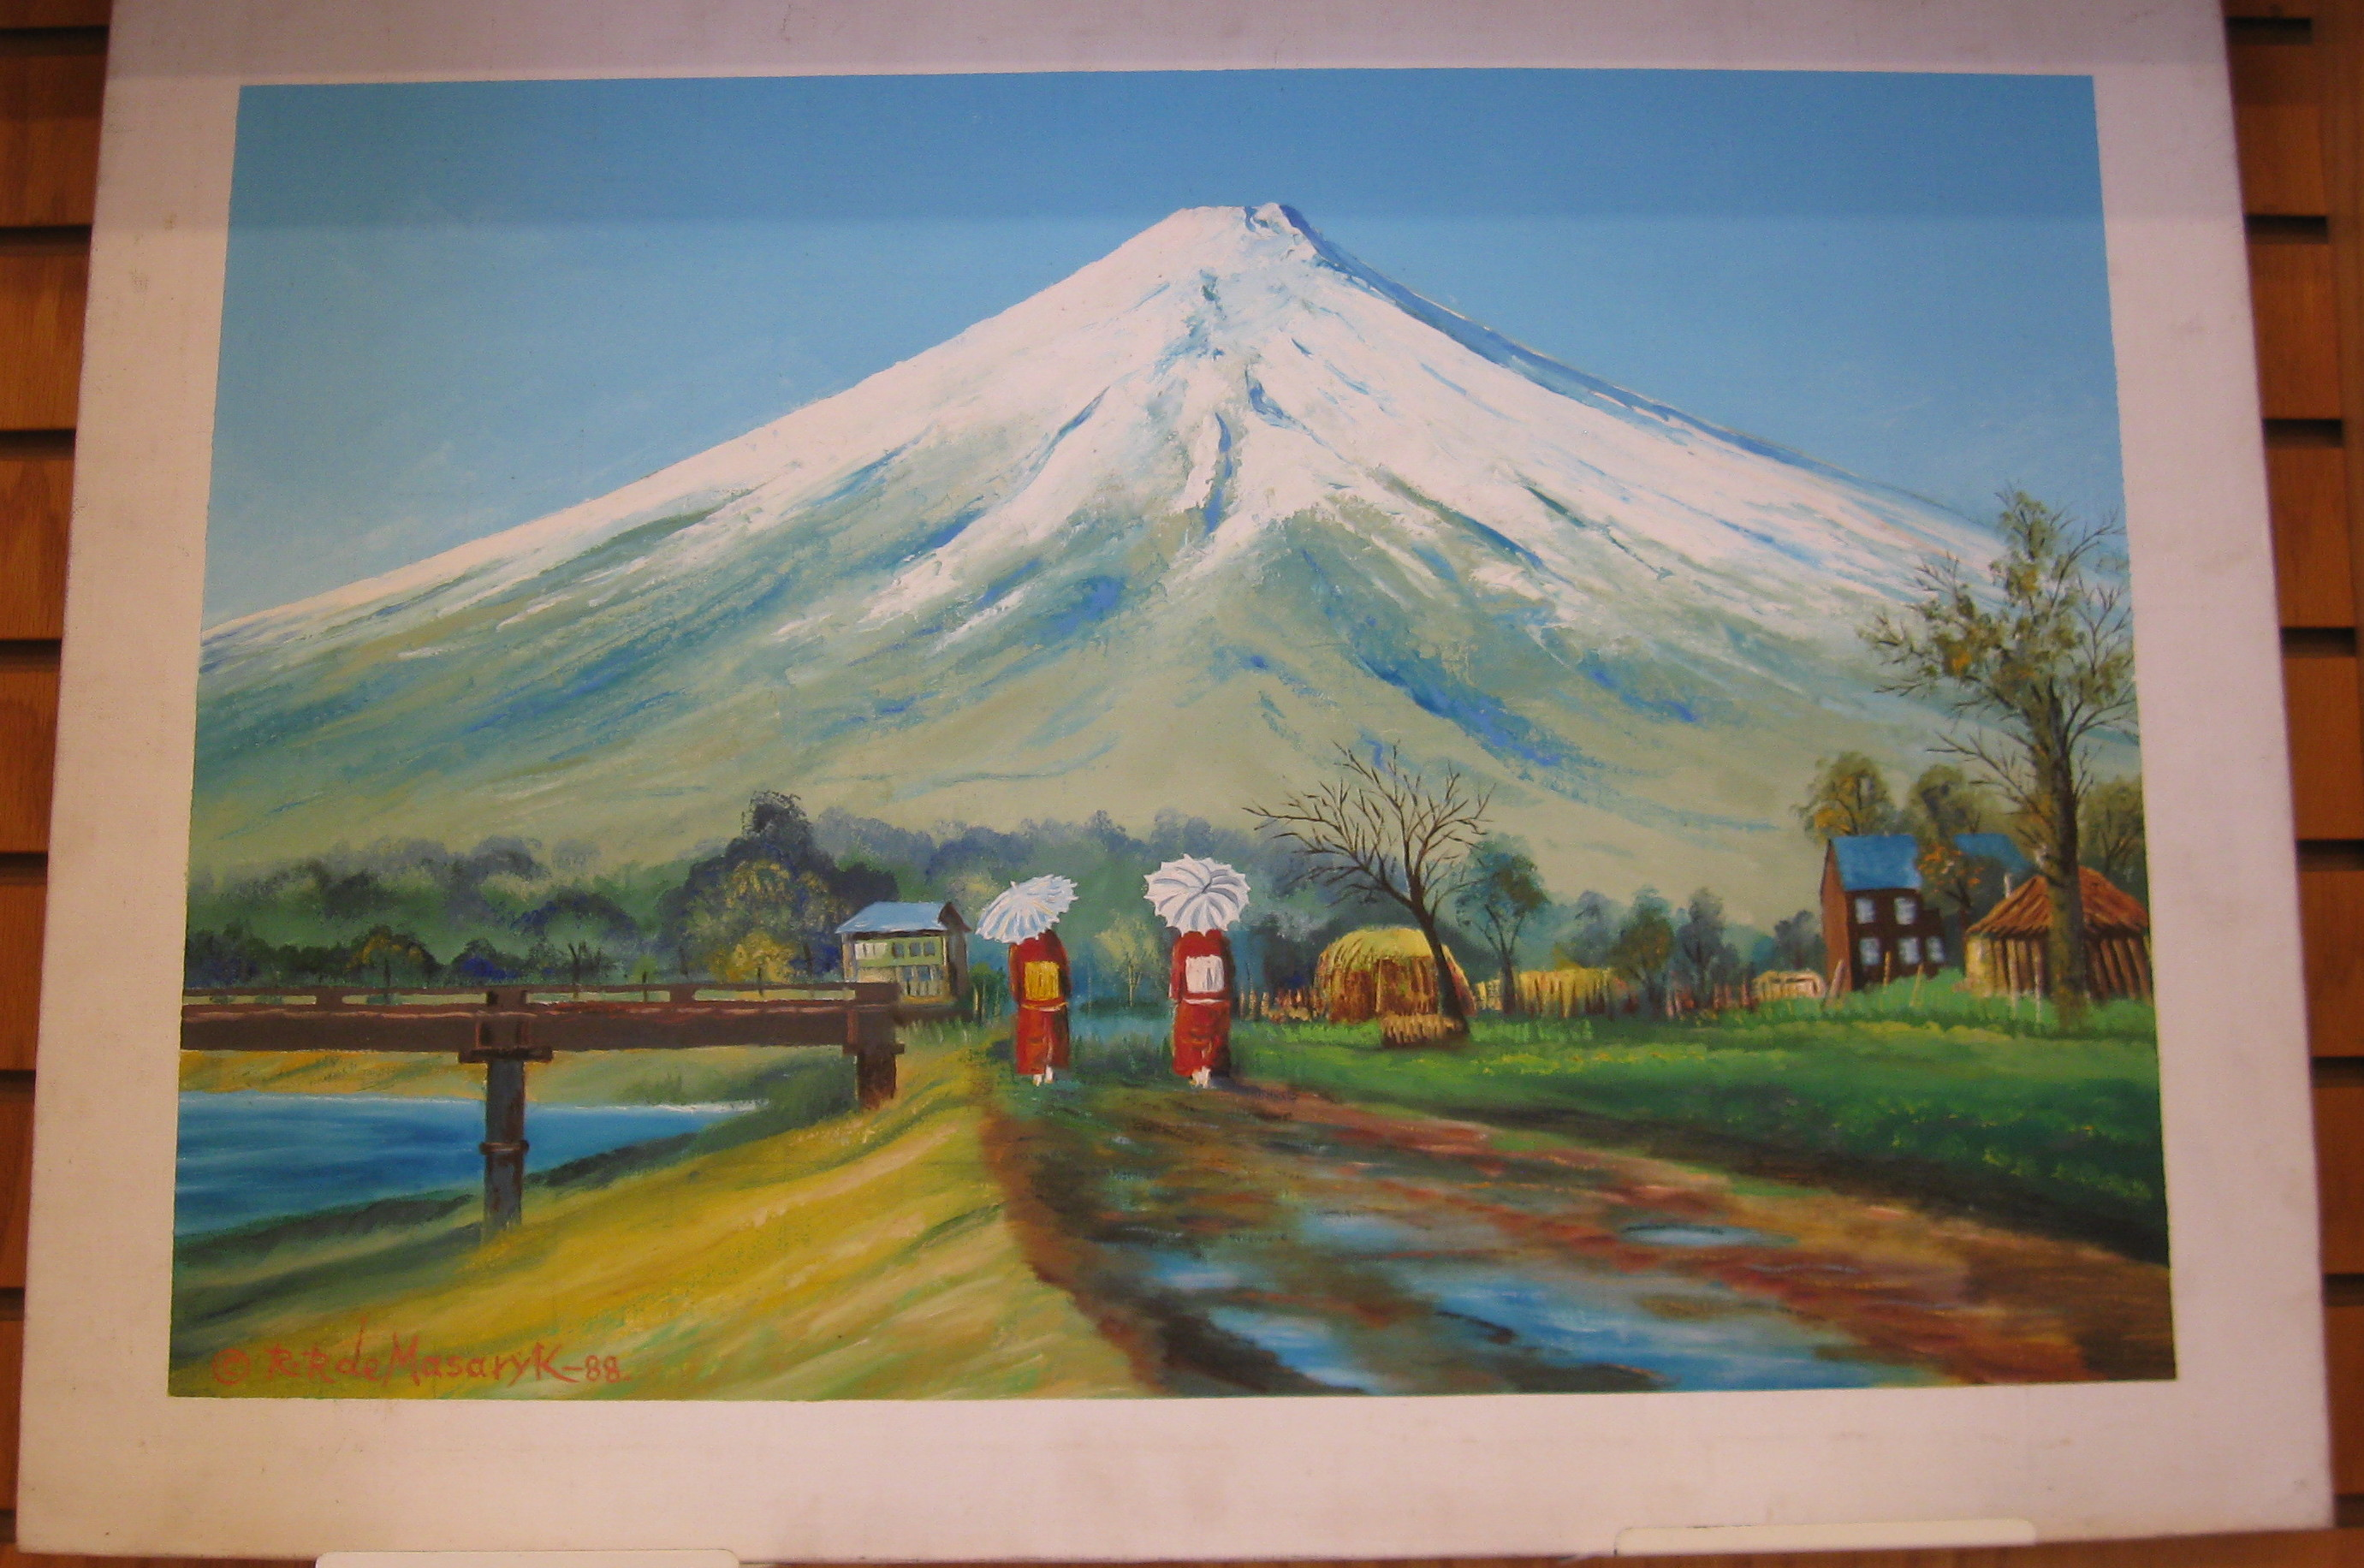 Mount Fuji Painting by R. R. Masaryk 1988 - **Store Pick Up**